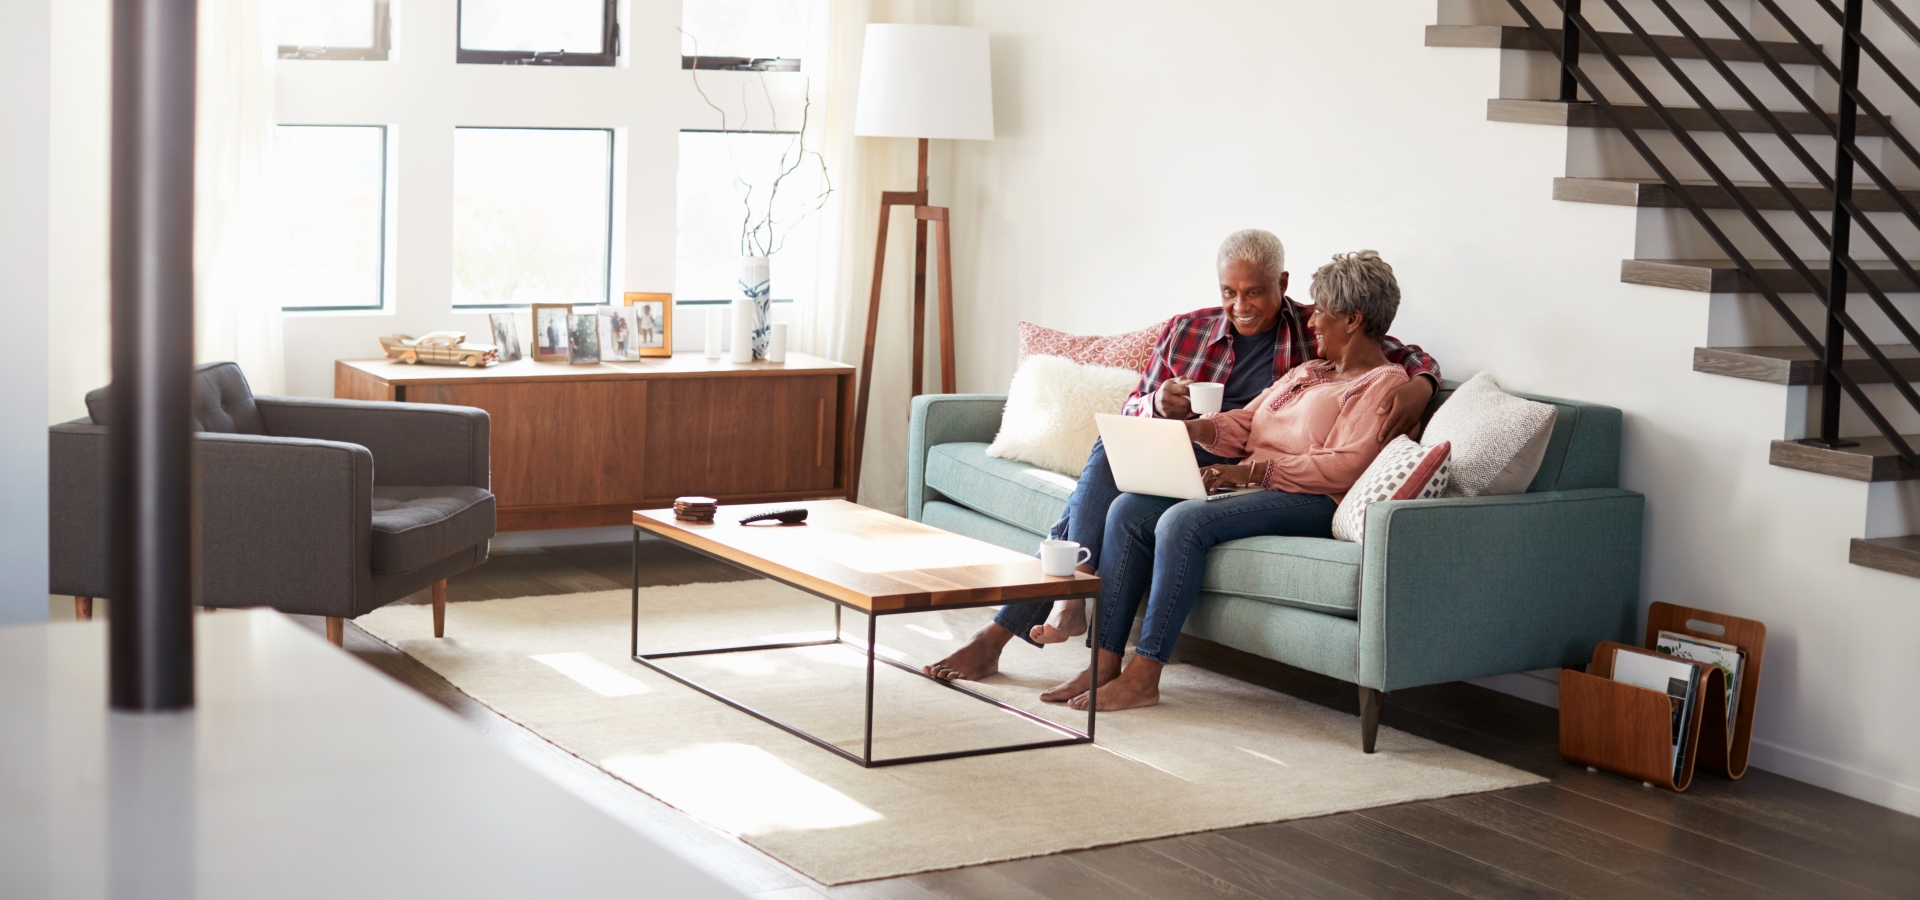 retired couple on couch looking at computer together